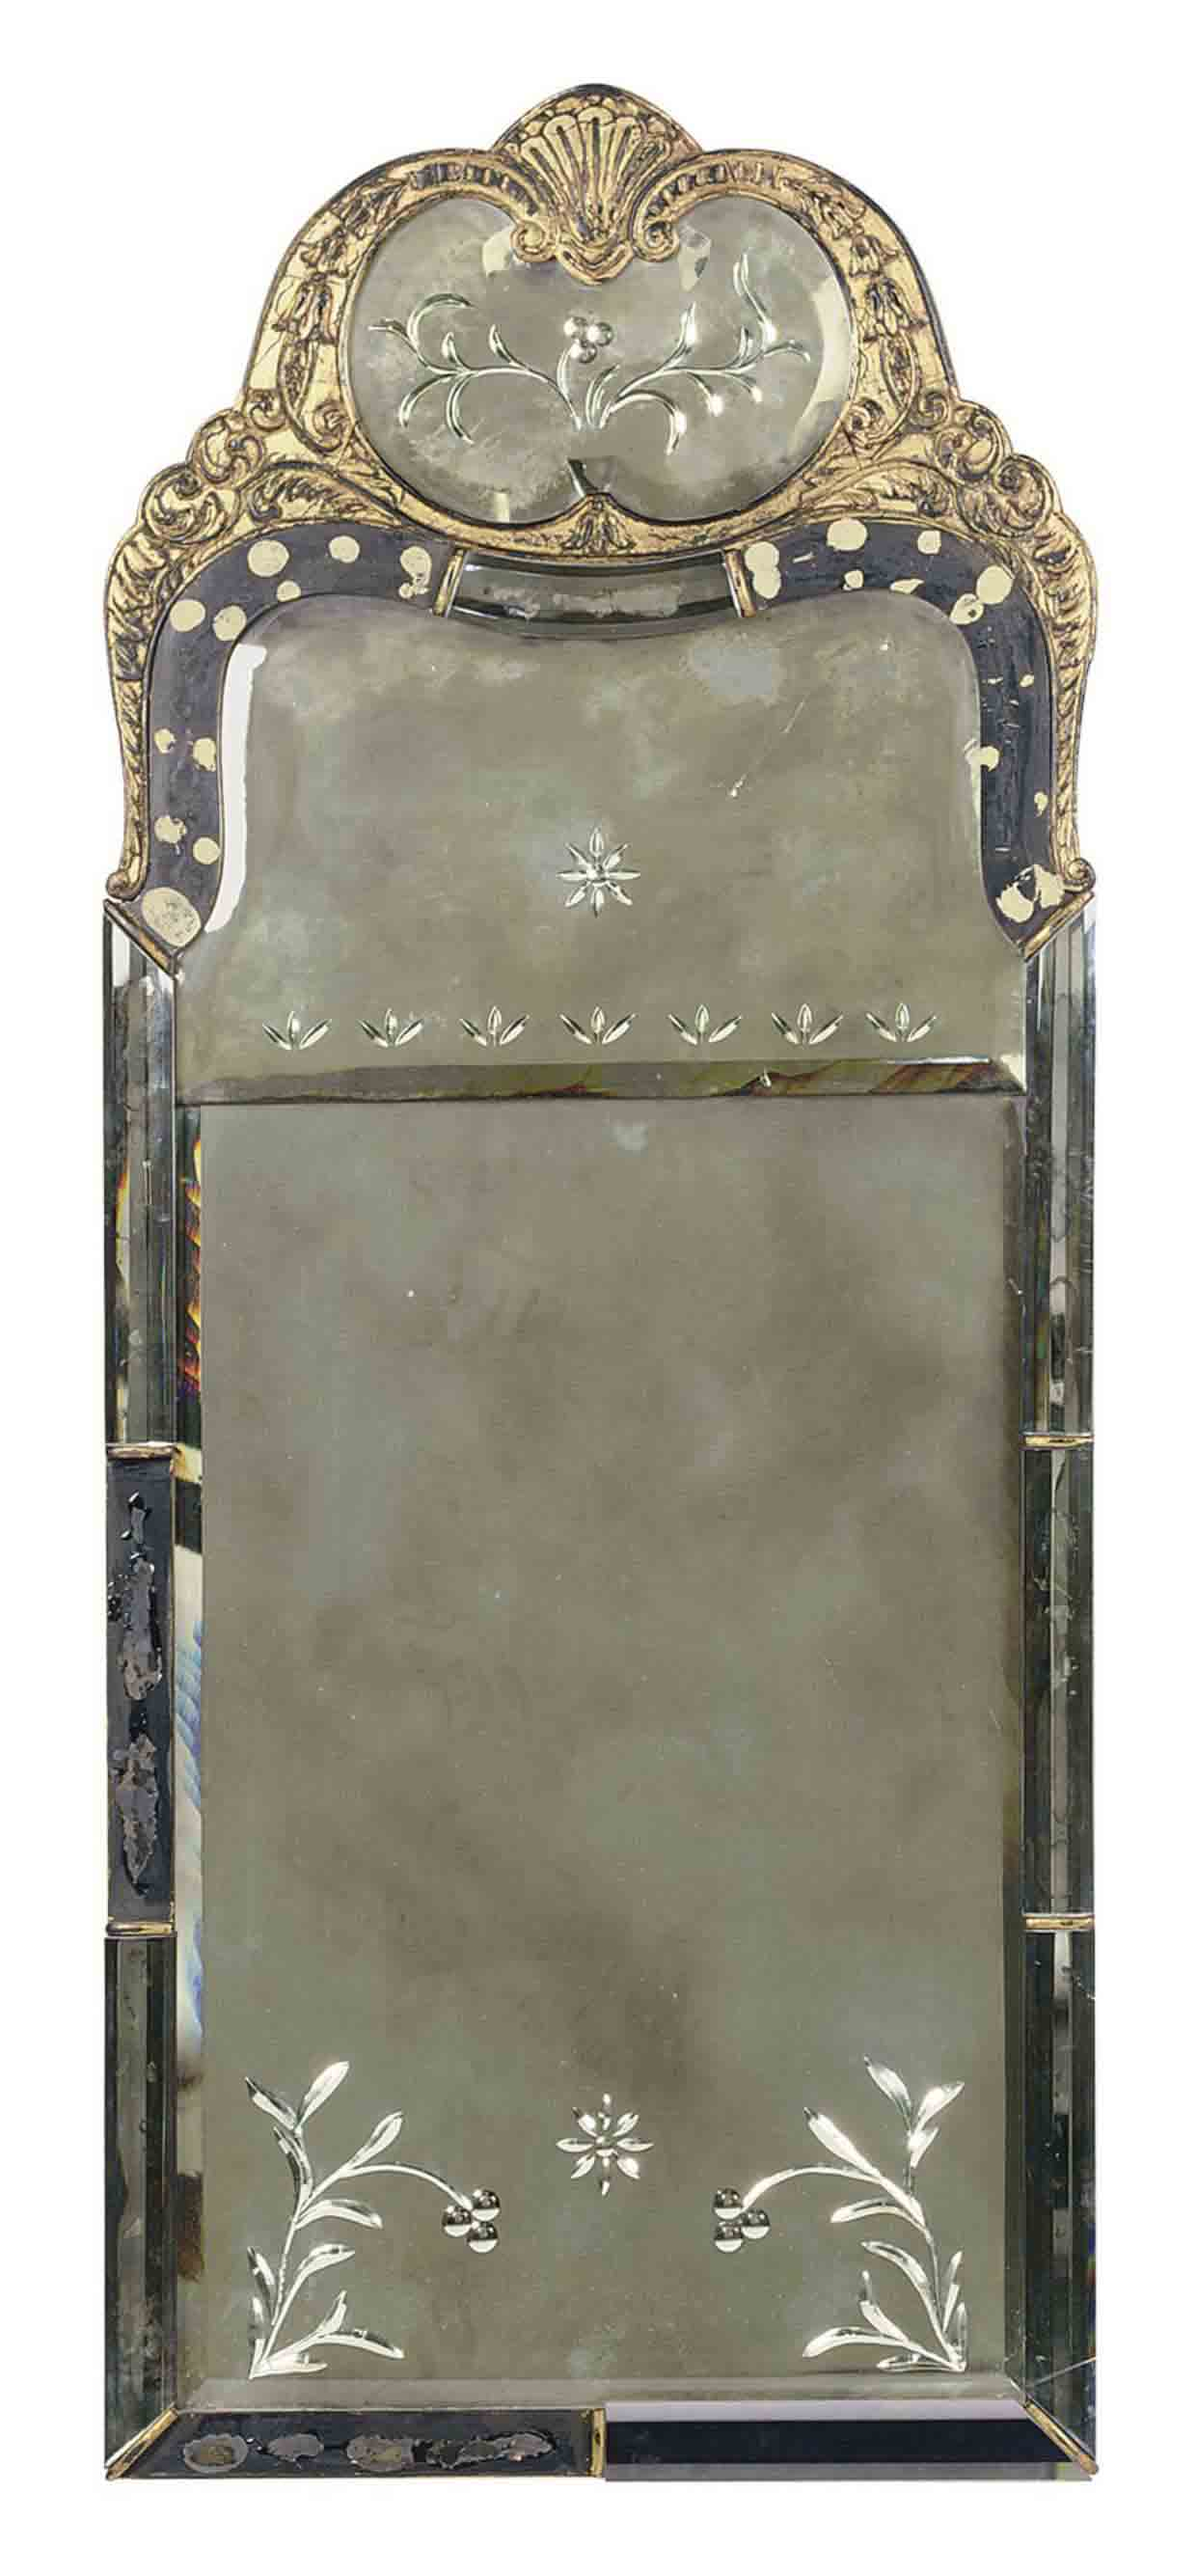 AN EBONIZED, PARCEL-GILT AND ETCHED-GLASS PIER MIRROR,